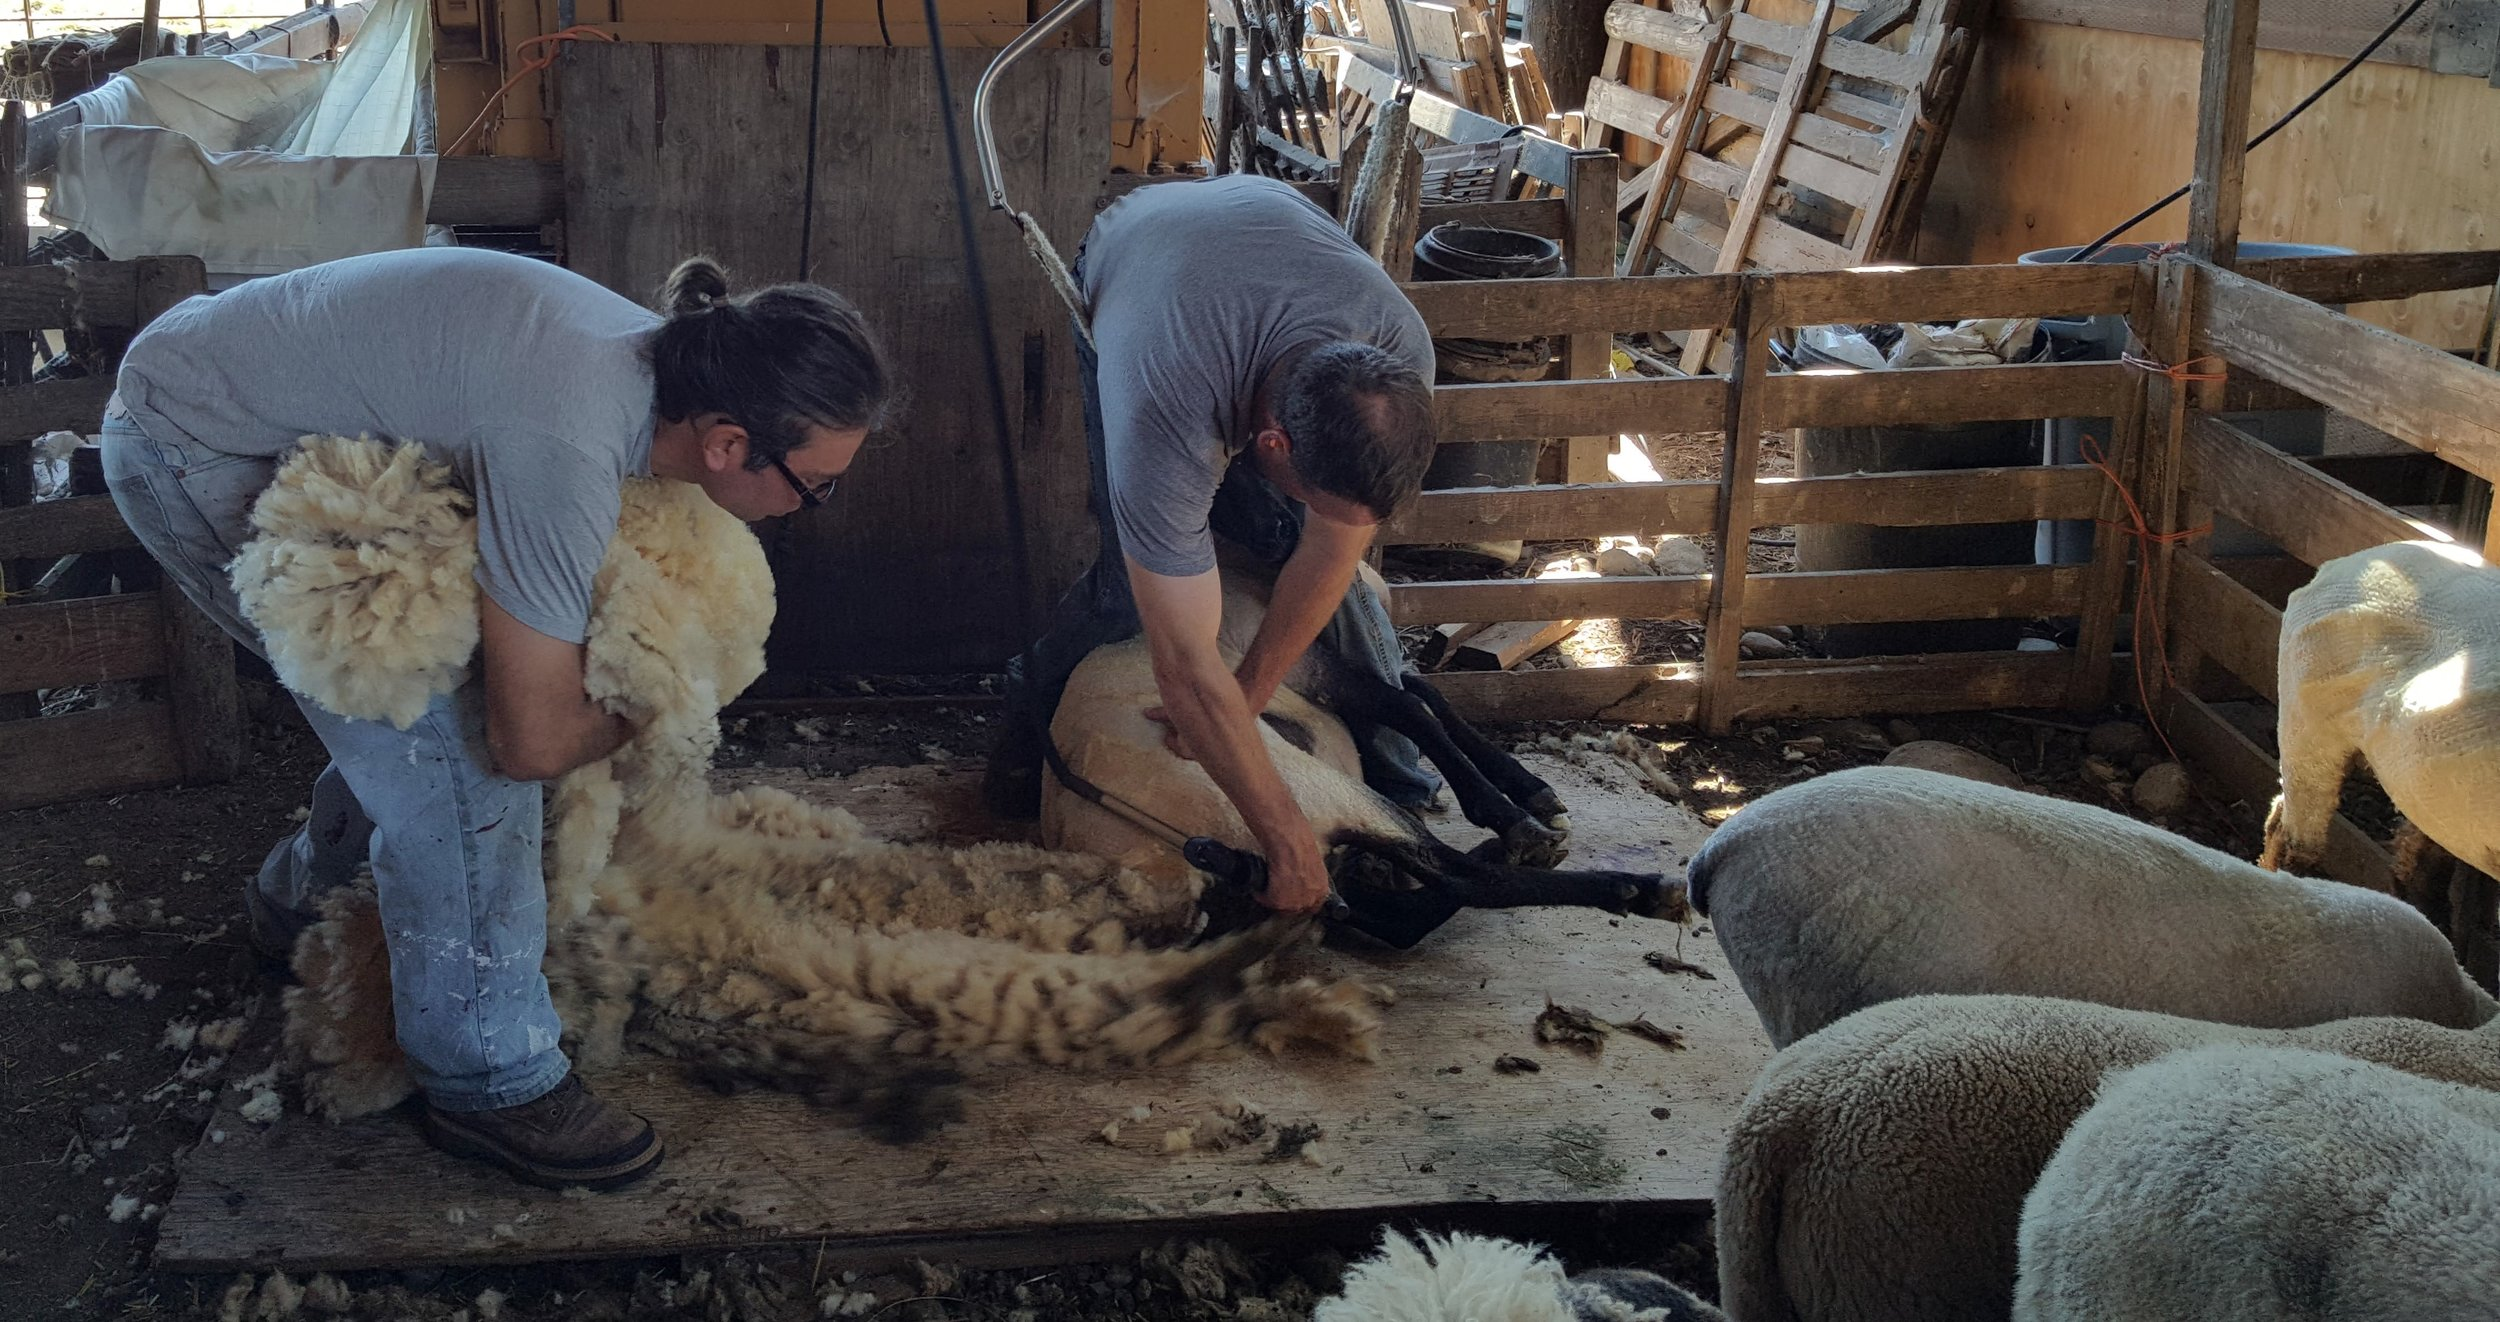 Shearing with Bill Reiser and getting help from our son, Nils Dunder, who is stuffing wool in the wool bag.